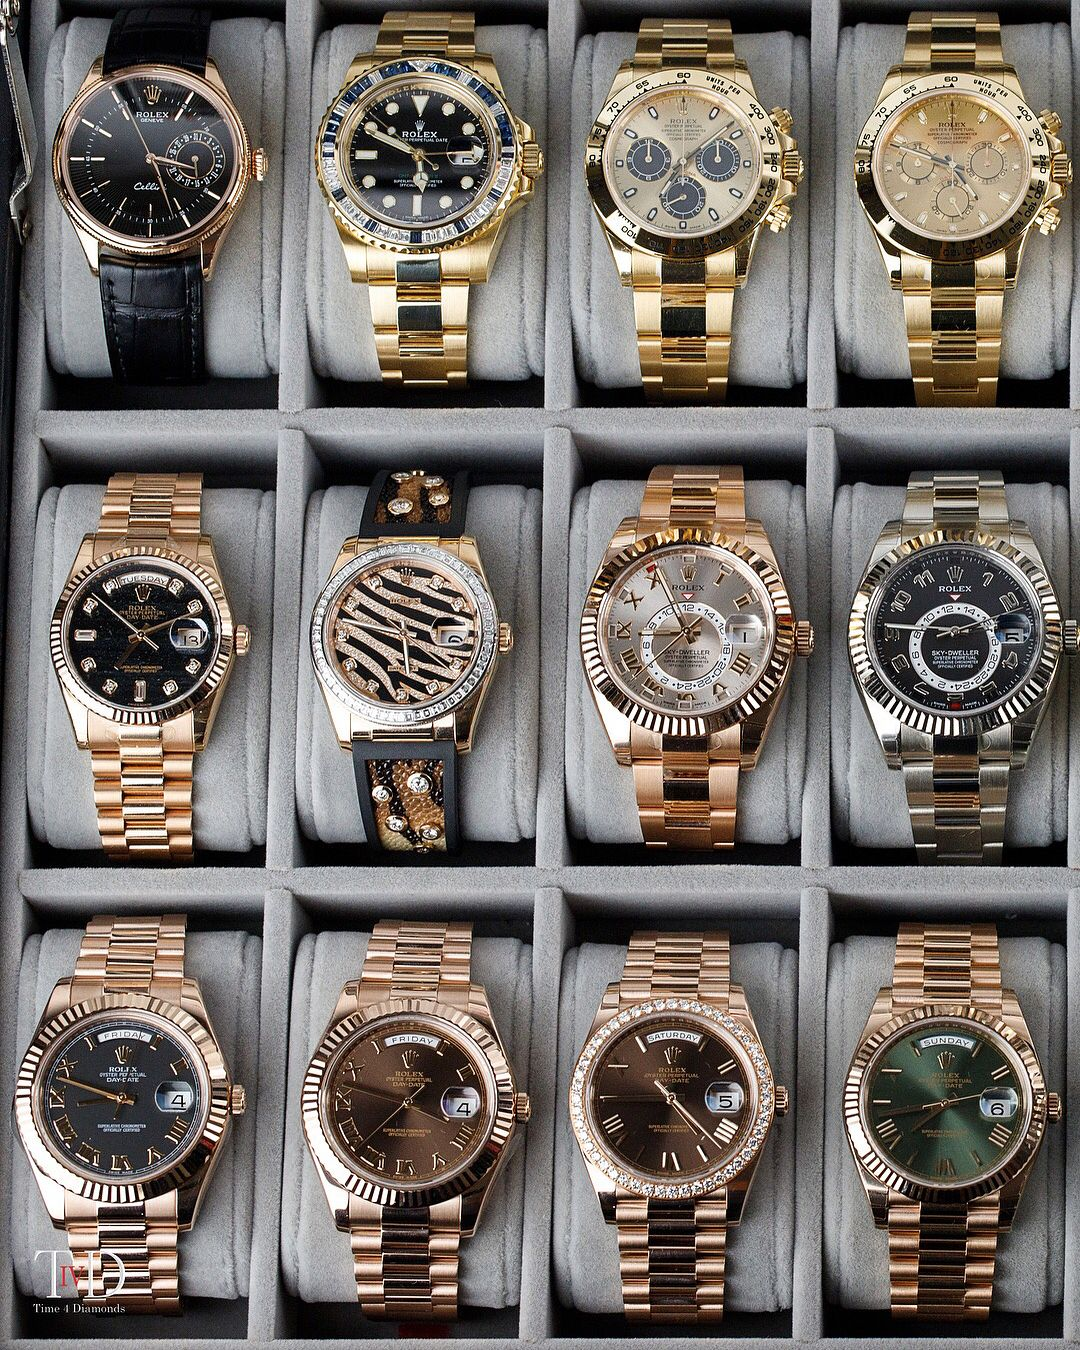 5 268 Likes 59 Comments Aleks Watches Alekswatches On Instagram Part Of The Rolex Collection Available At Time4 2020 Erkek Kol Saatleri Rolex Saatler Rolex